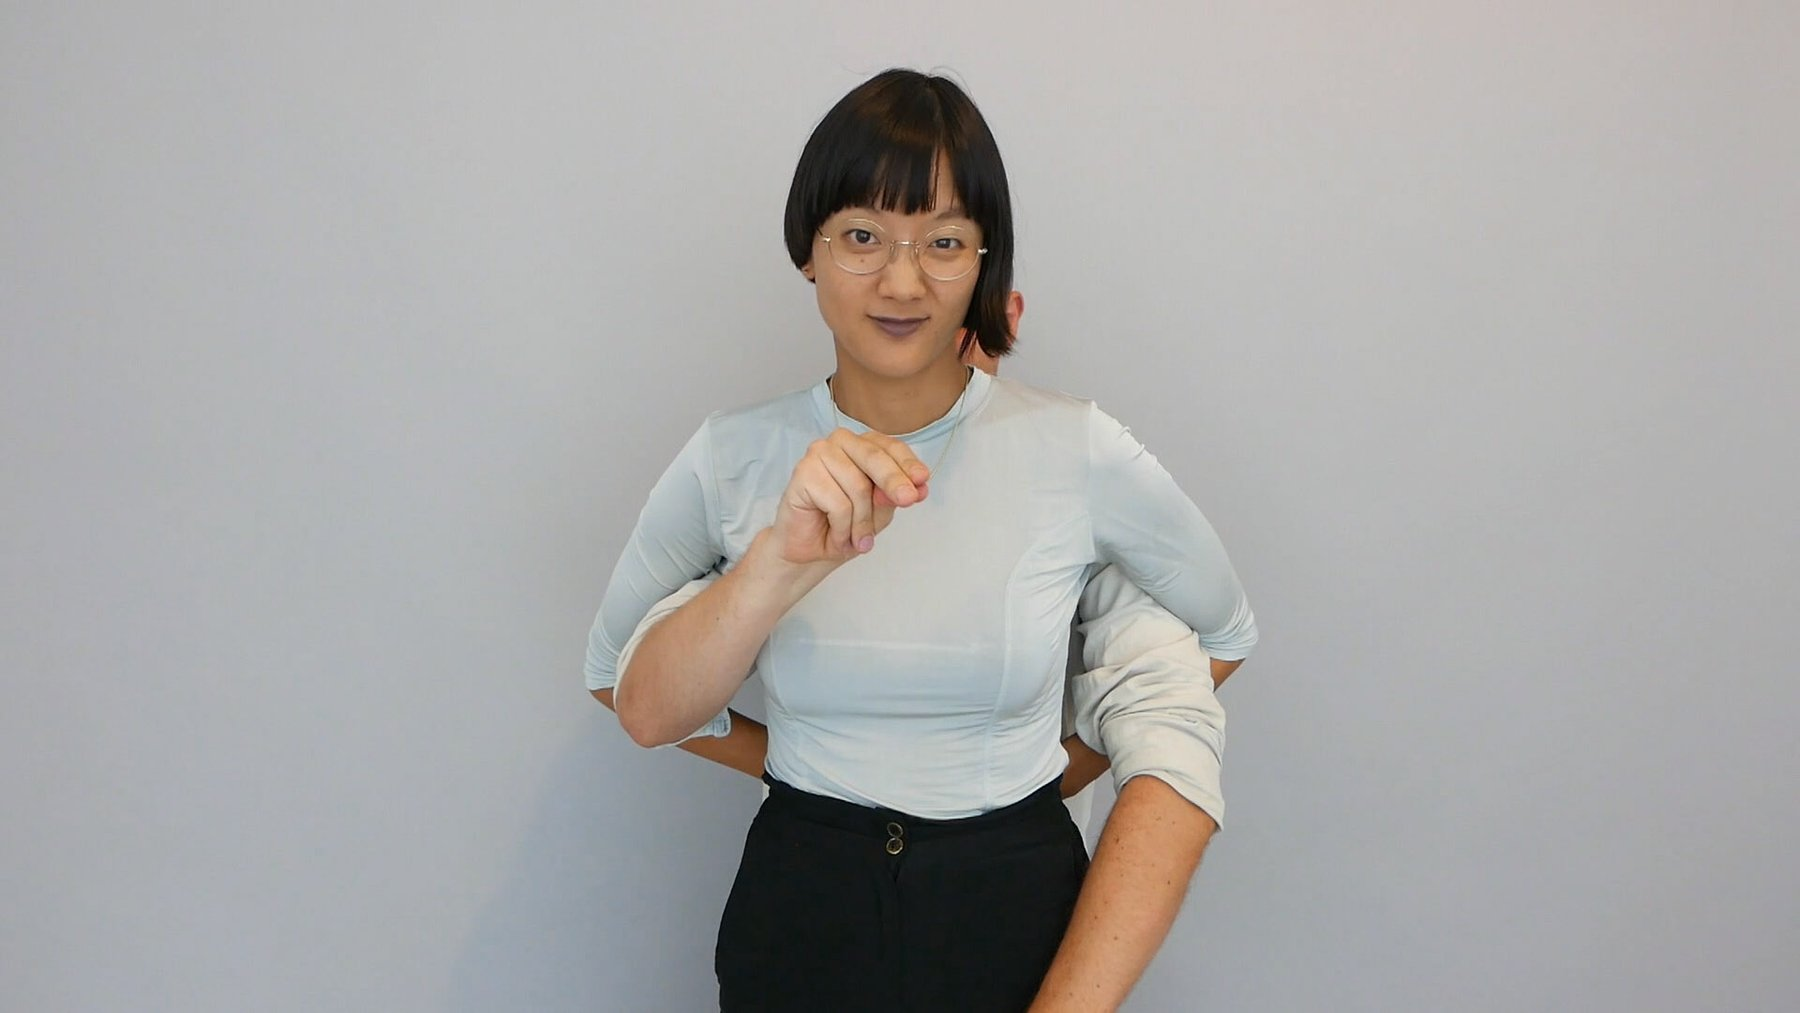 An Asian woman wearing glasses stands in front of a grey background with someone else's arms around her waist, Kim Soundtracks